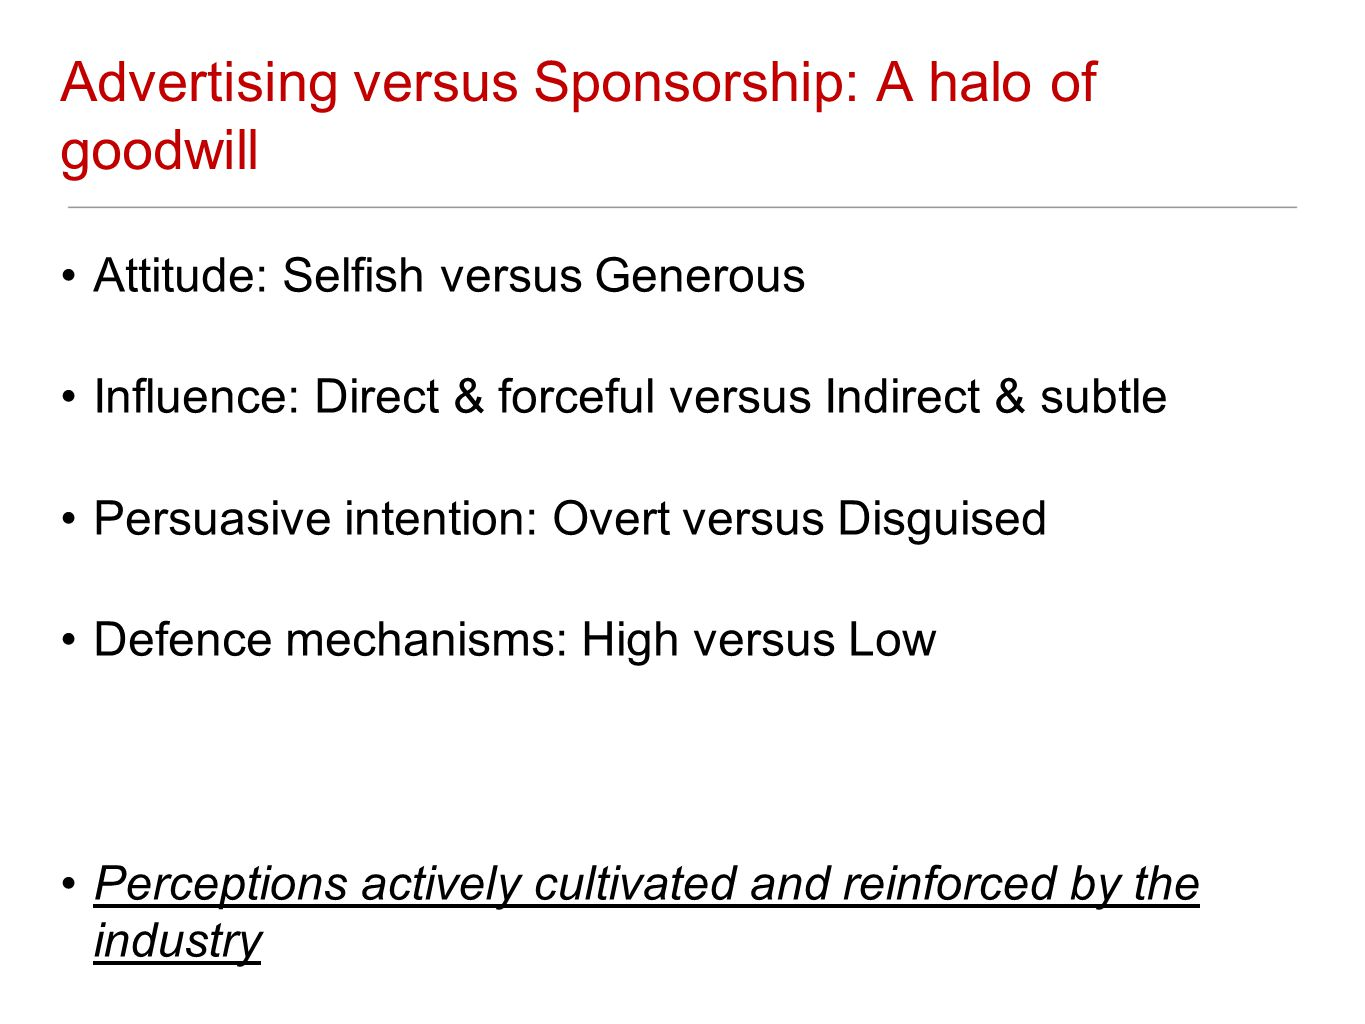 Advertising versus Sponsorship: A halo of goodwill Attitude: Selfish versus Generous Influence: Direct & forceful versus Indirect & subtle Persuasive intention: Overt versus Disguised Defence mechanisms: High versus Low Perceptions actively cultivated and reinforced by the industry